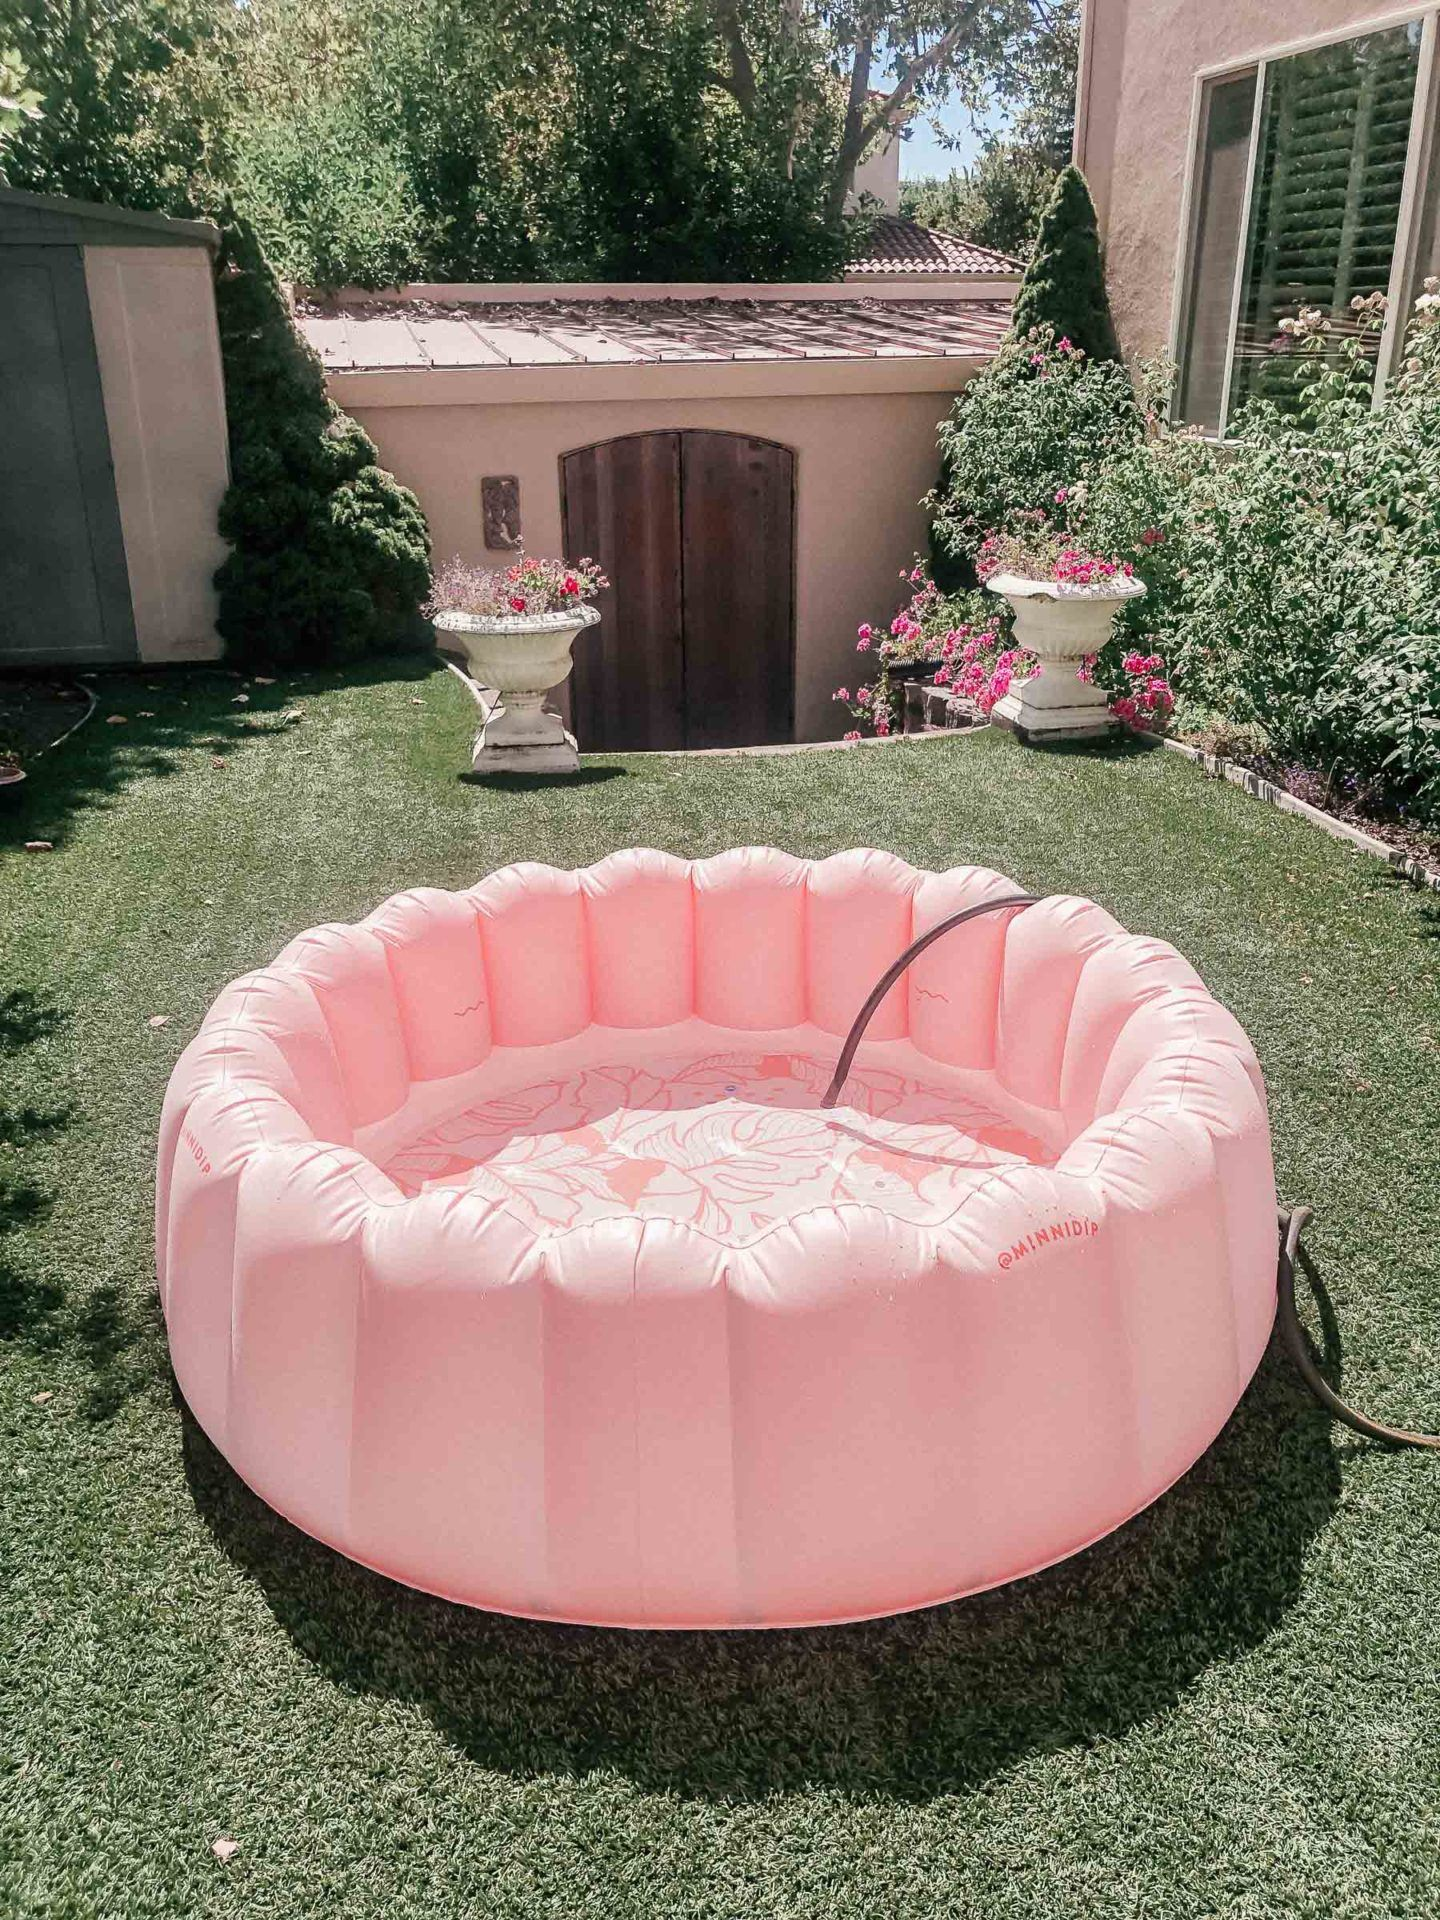 Cute adult inflatable pools, by lifestyle blogger What The Fab